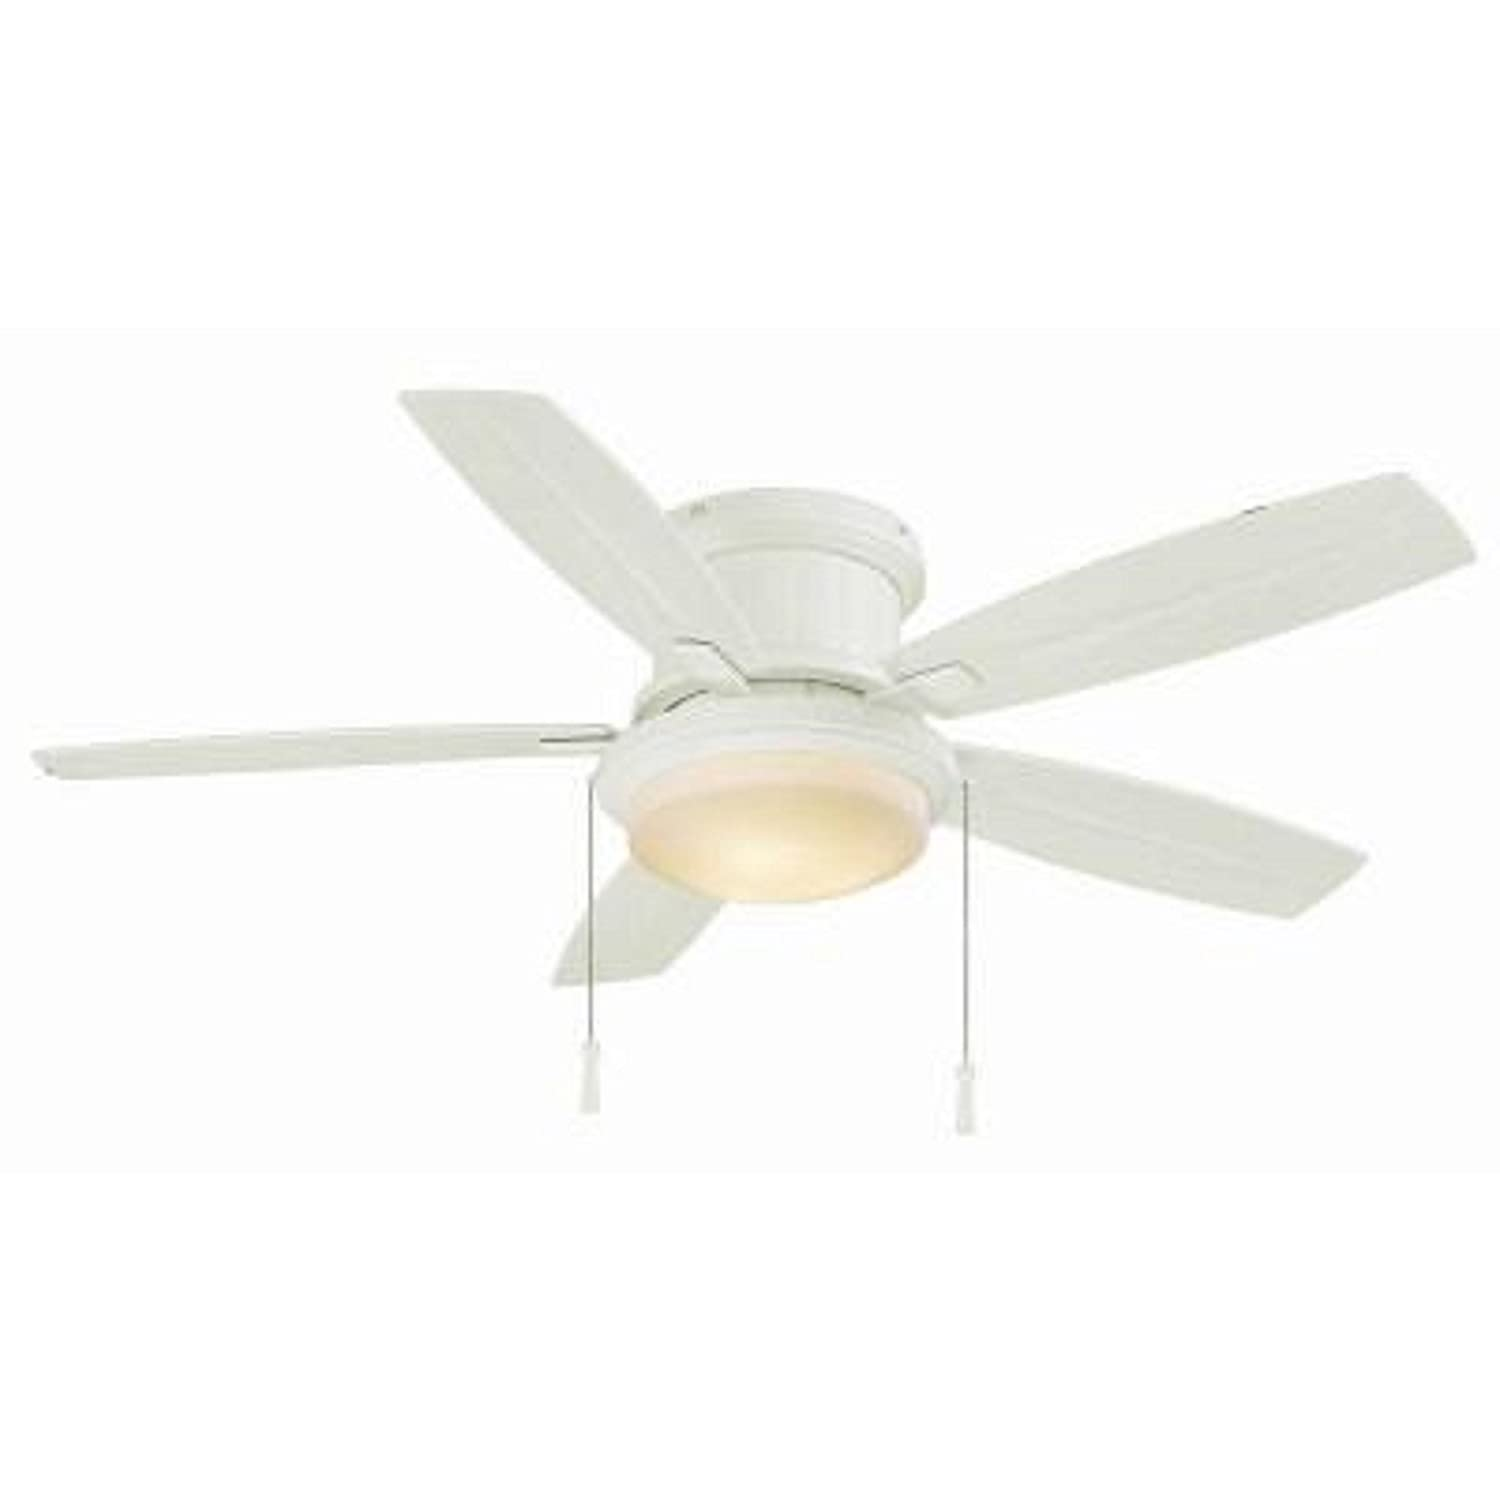 lights kit ceiling ceilings fans superb inch with no fan light white